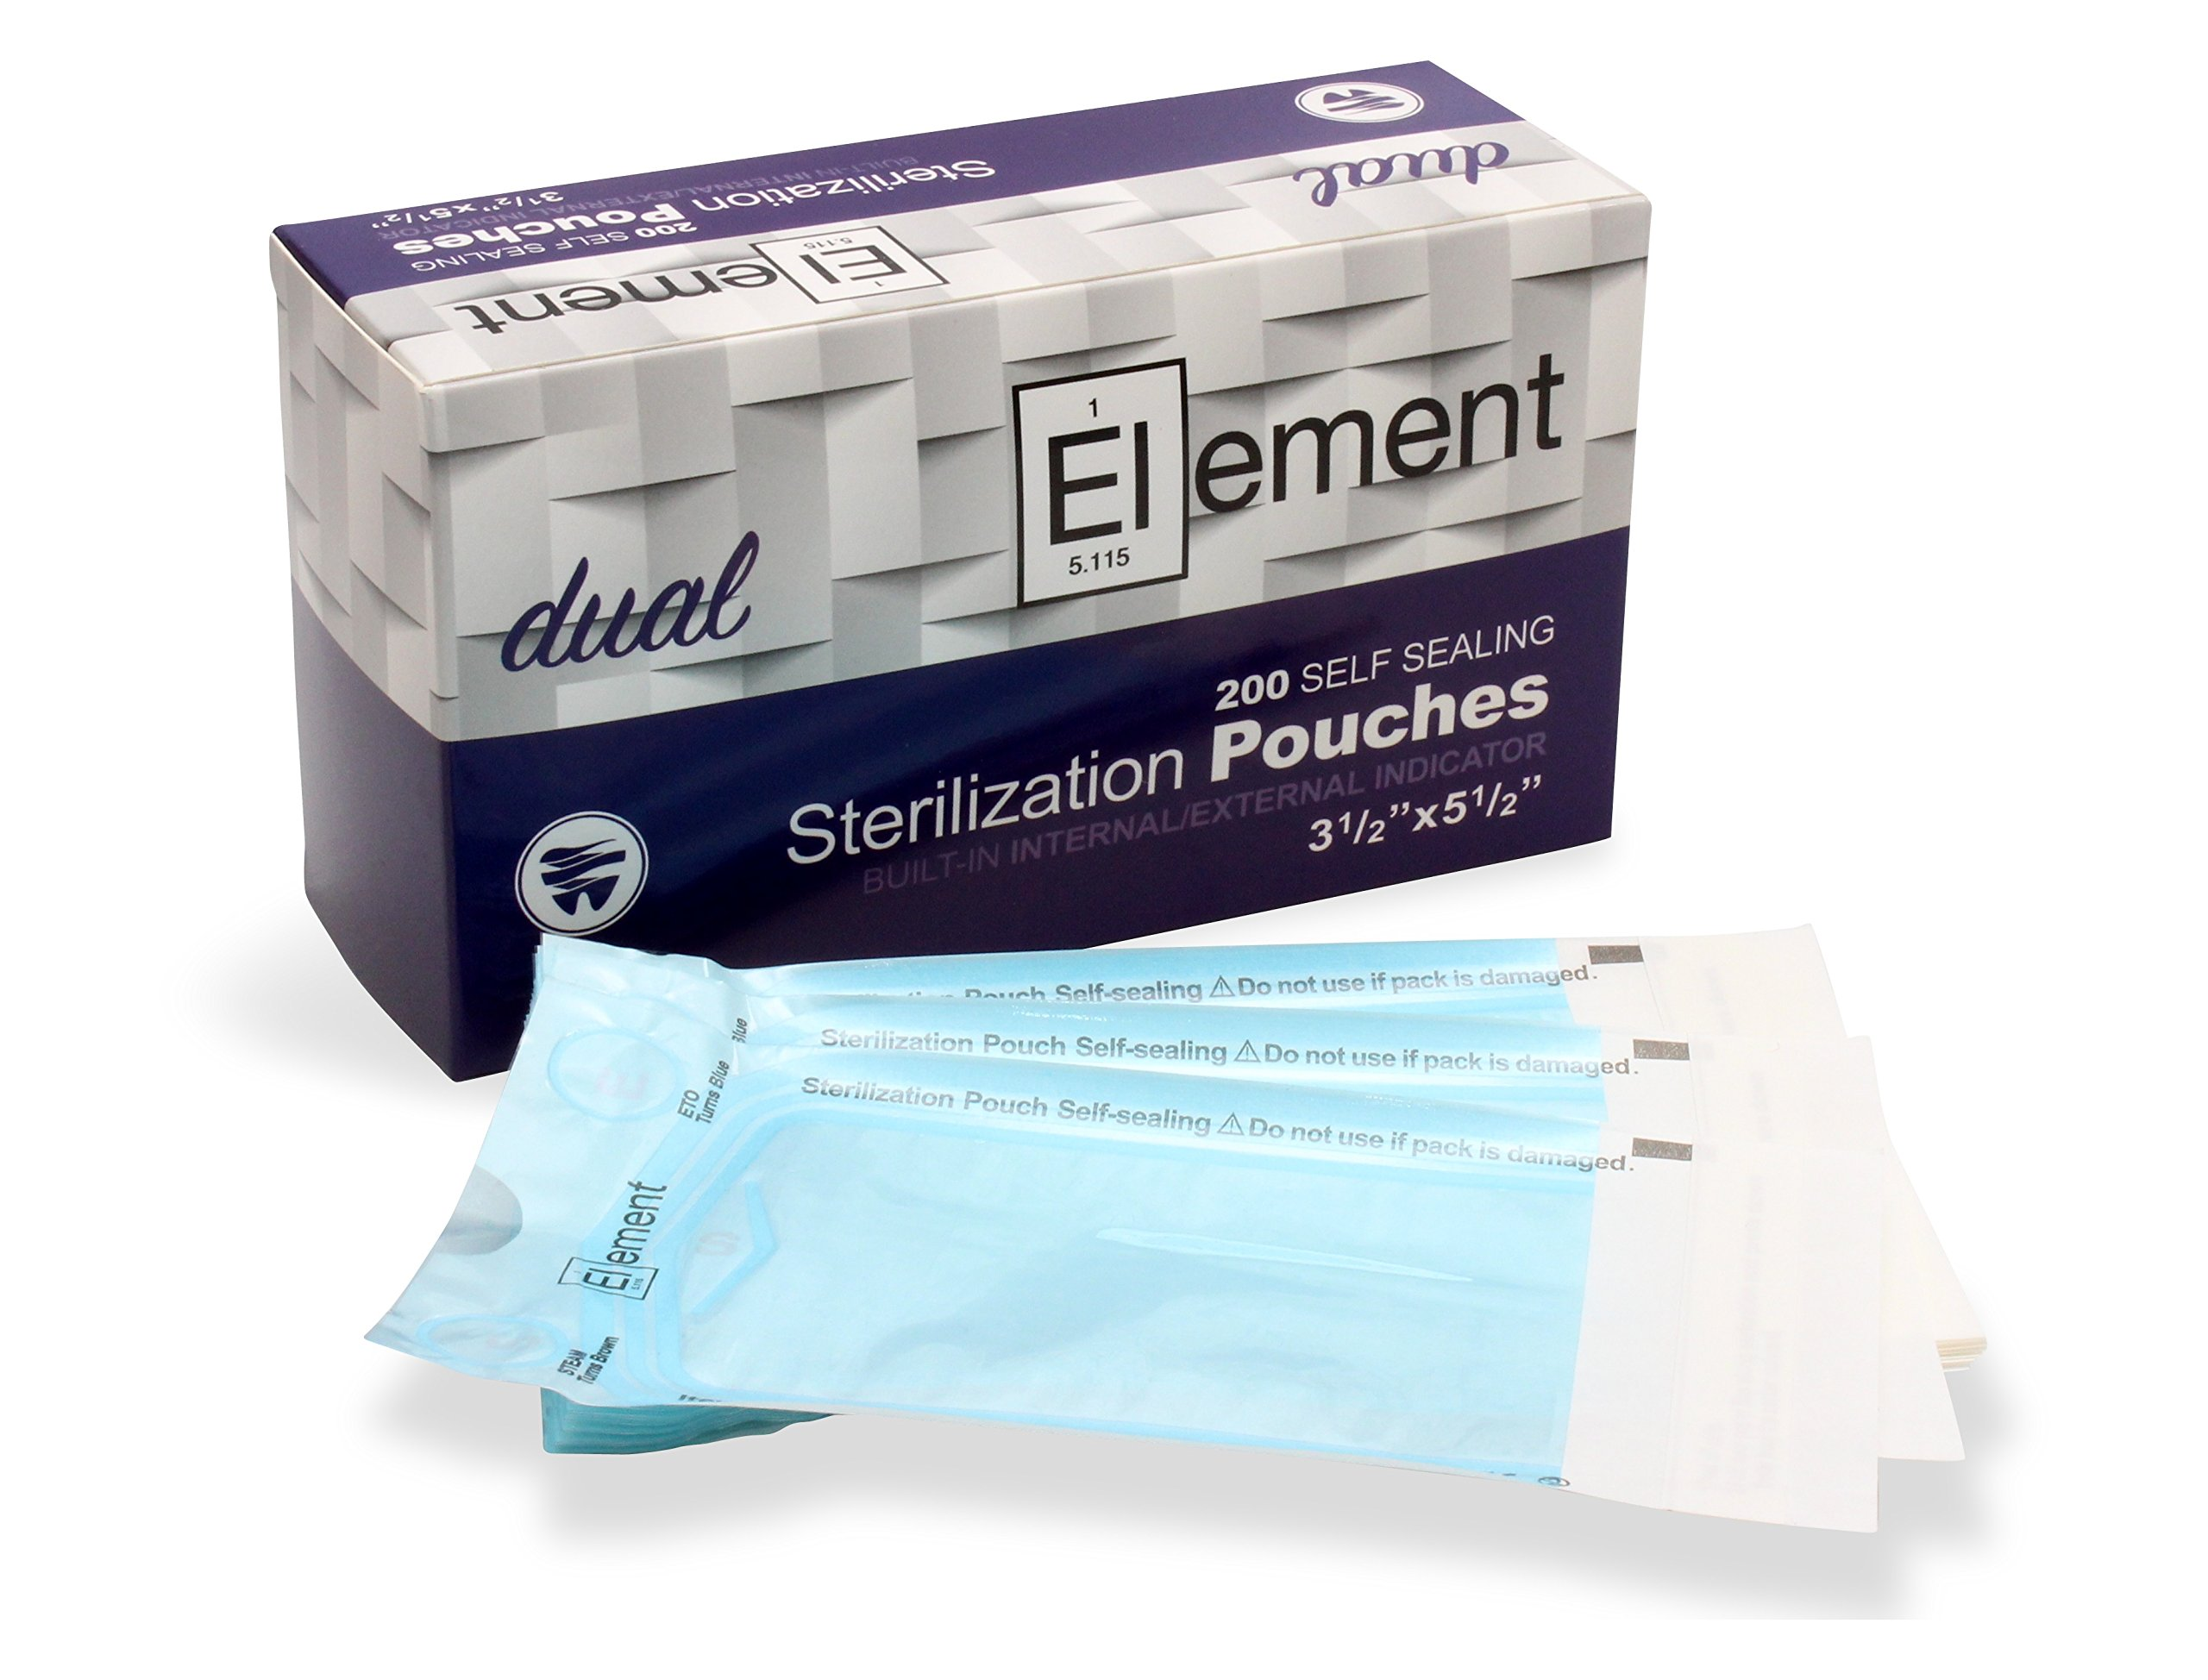 ELEMENT - Self Seal - Dual Indicator Sterilization Pouches - 3.5 x 5.5 - Pack of 200